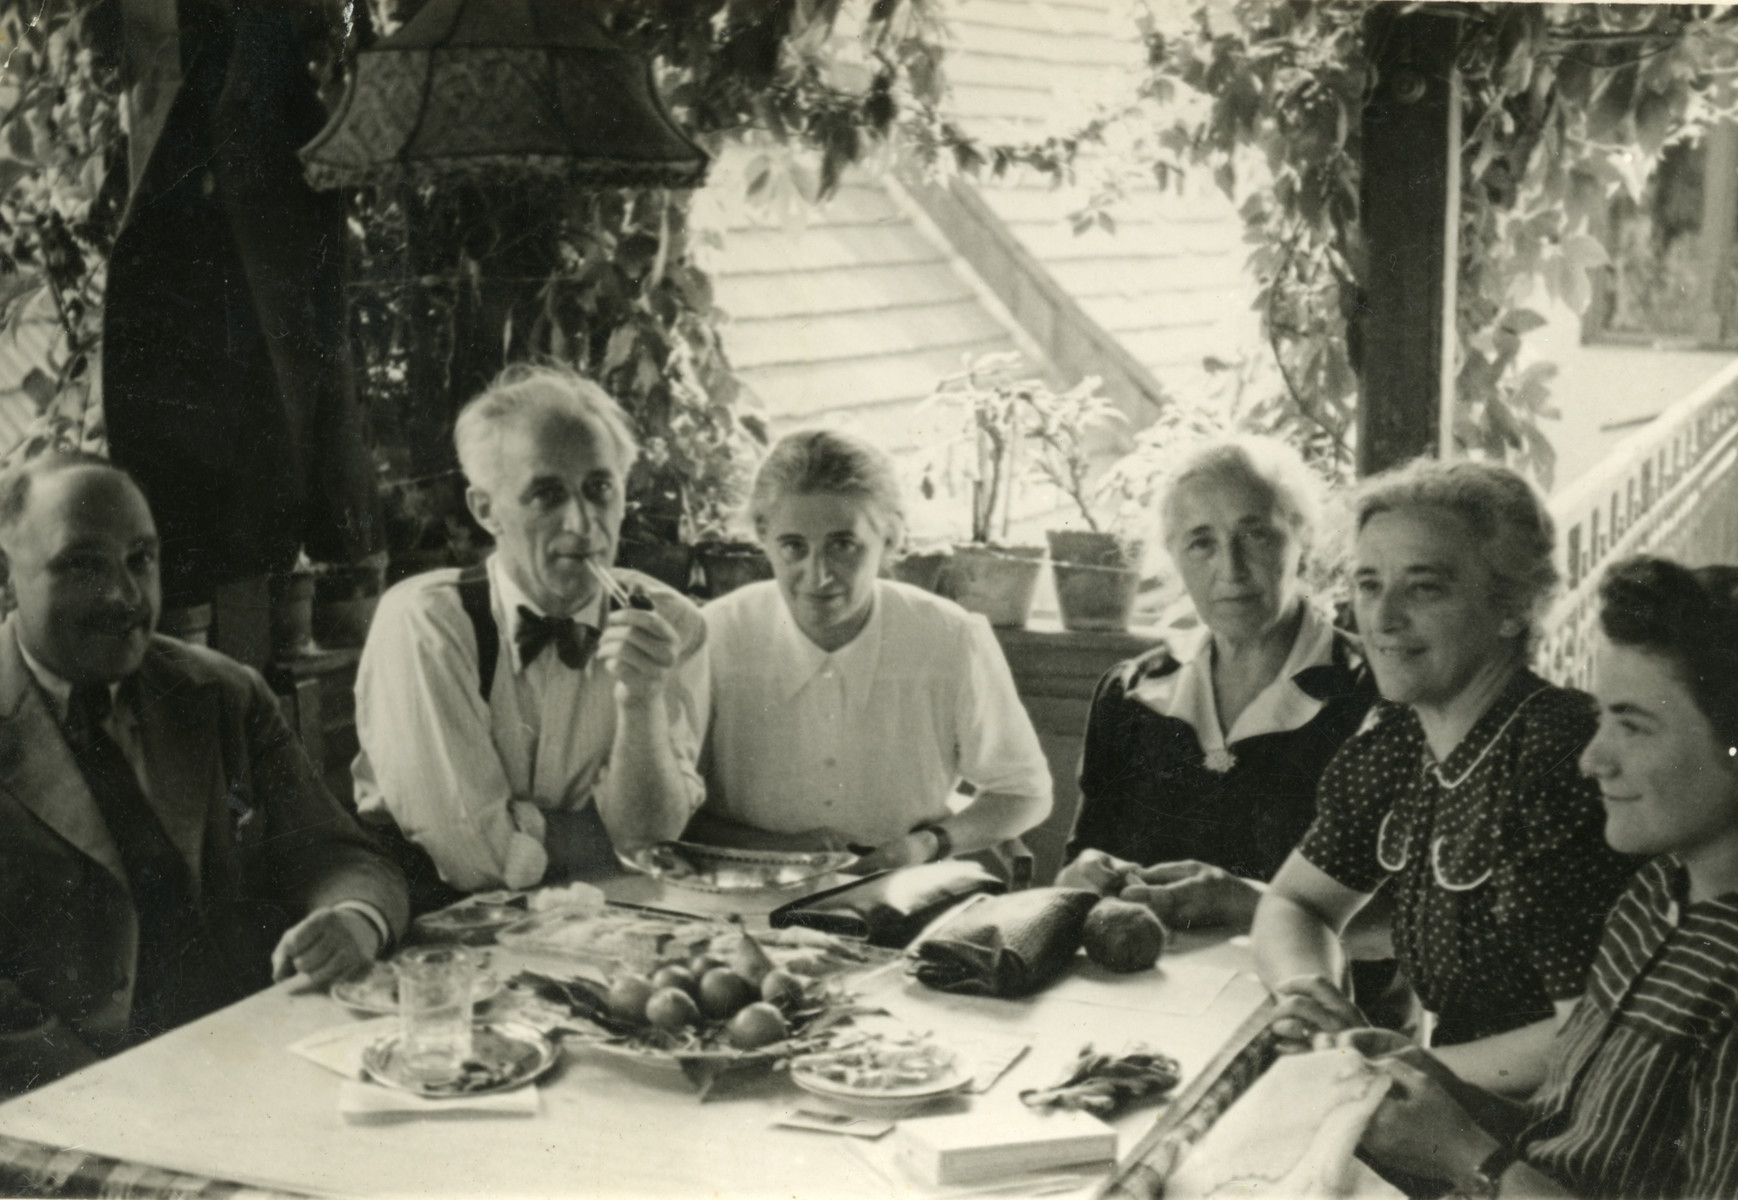 Members of the Duschnitz family sit around a table laden with fruit.  Pictured are Erno Duschnitz (donor's maternal uncle), Leonka Duschnitz Porgesand her husband Max Porges (donor's maternal aunt and uncle) , Malvin Duschnitz Kurti (another maternal aunt) and Frida Duschnitz Sigmund.